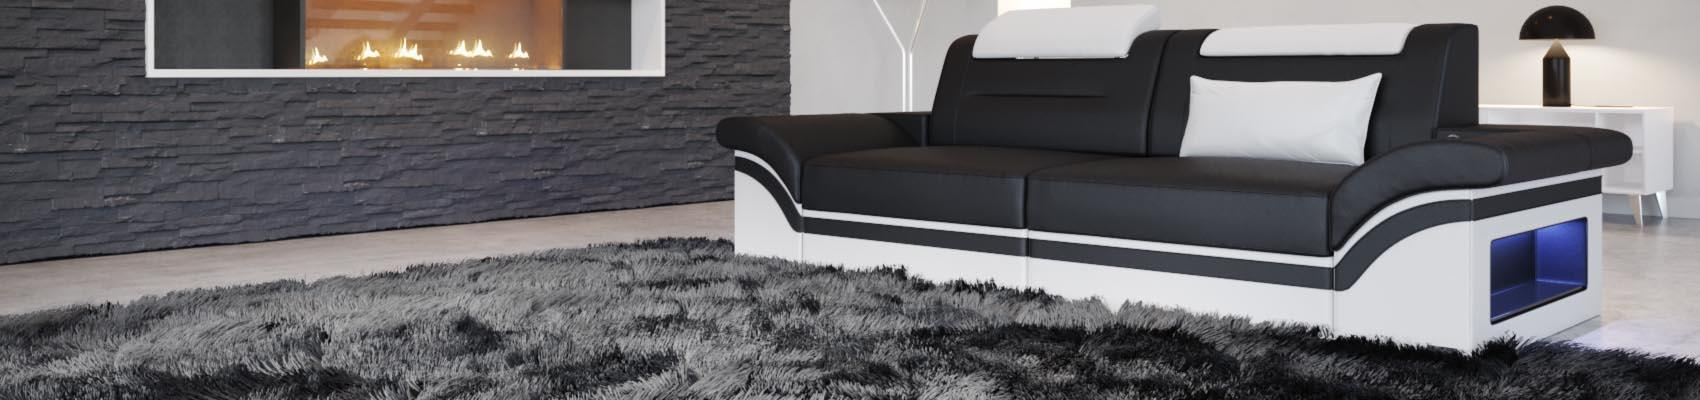 sofas 2 sitzer in echtleder oder stoff sofa dreams. Black Bedroom Furniture Sets. Home Design Ideas